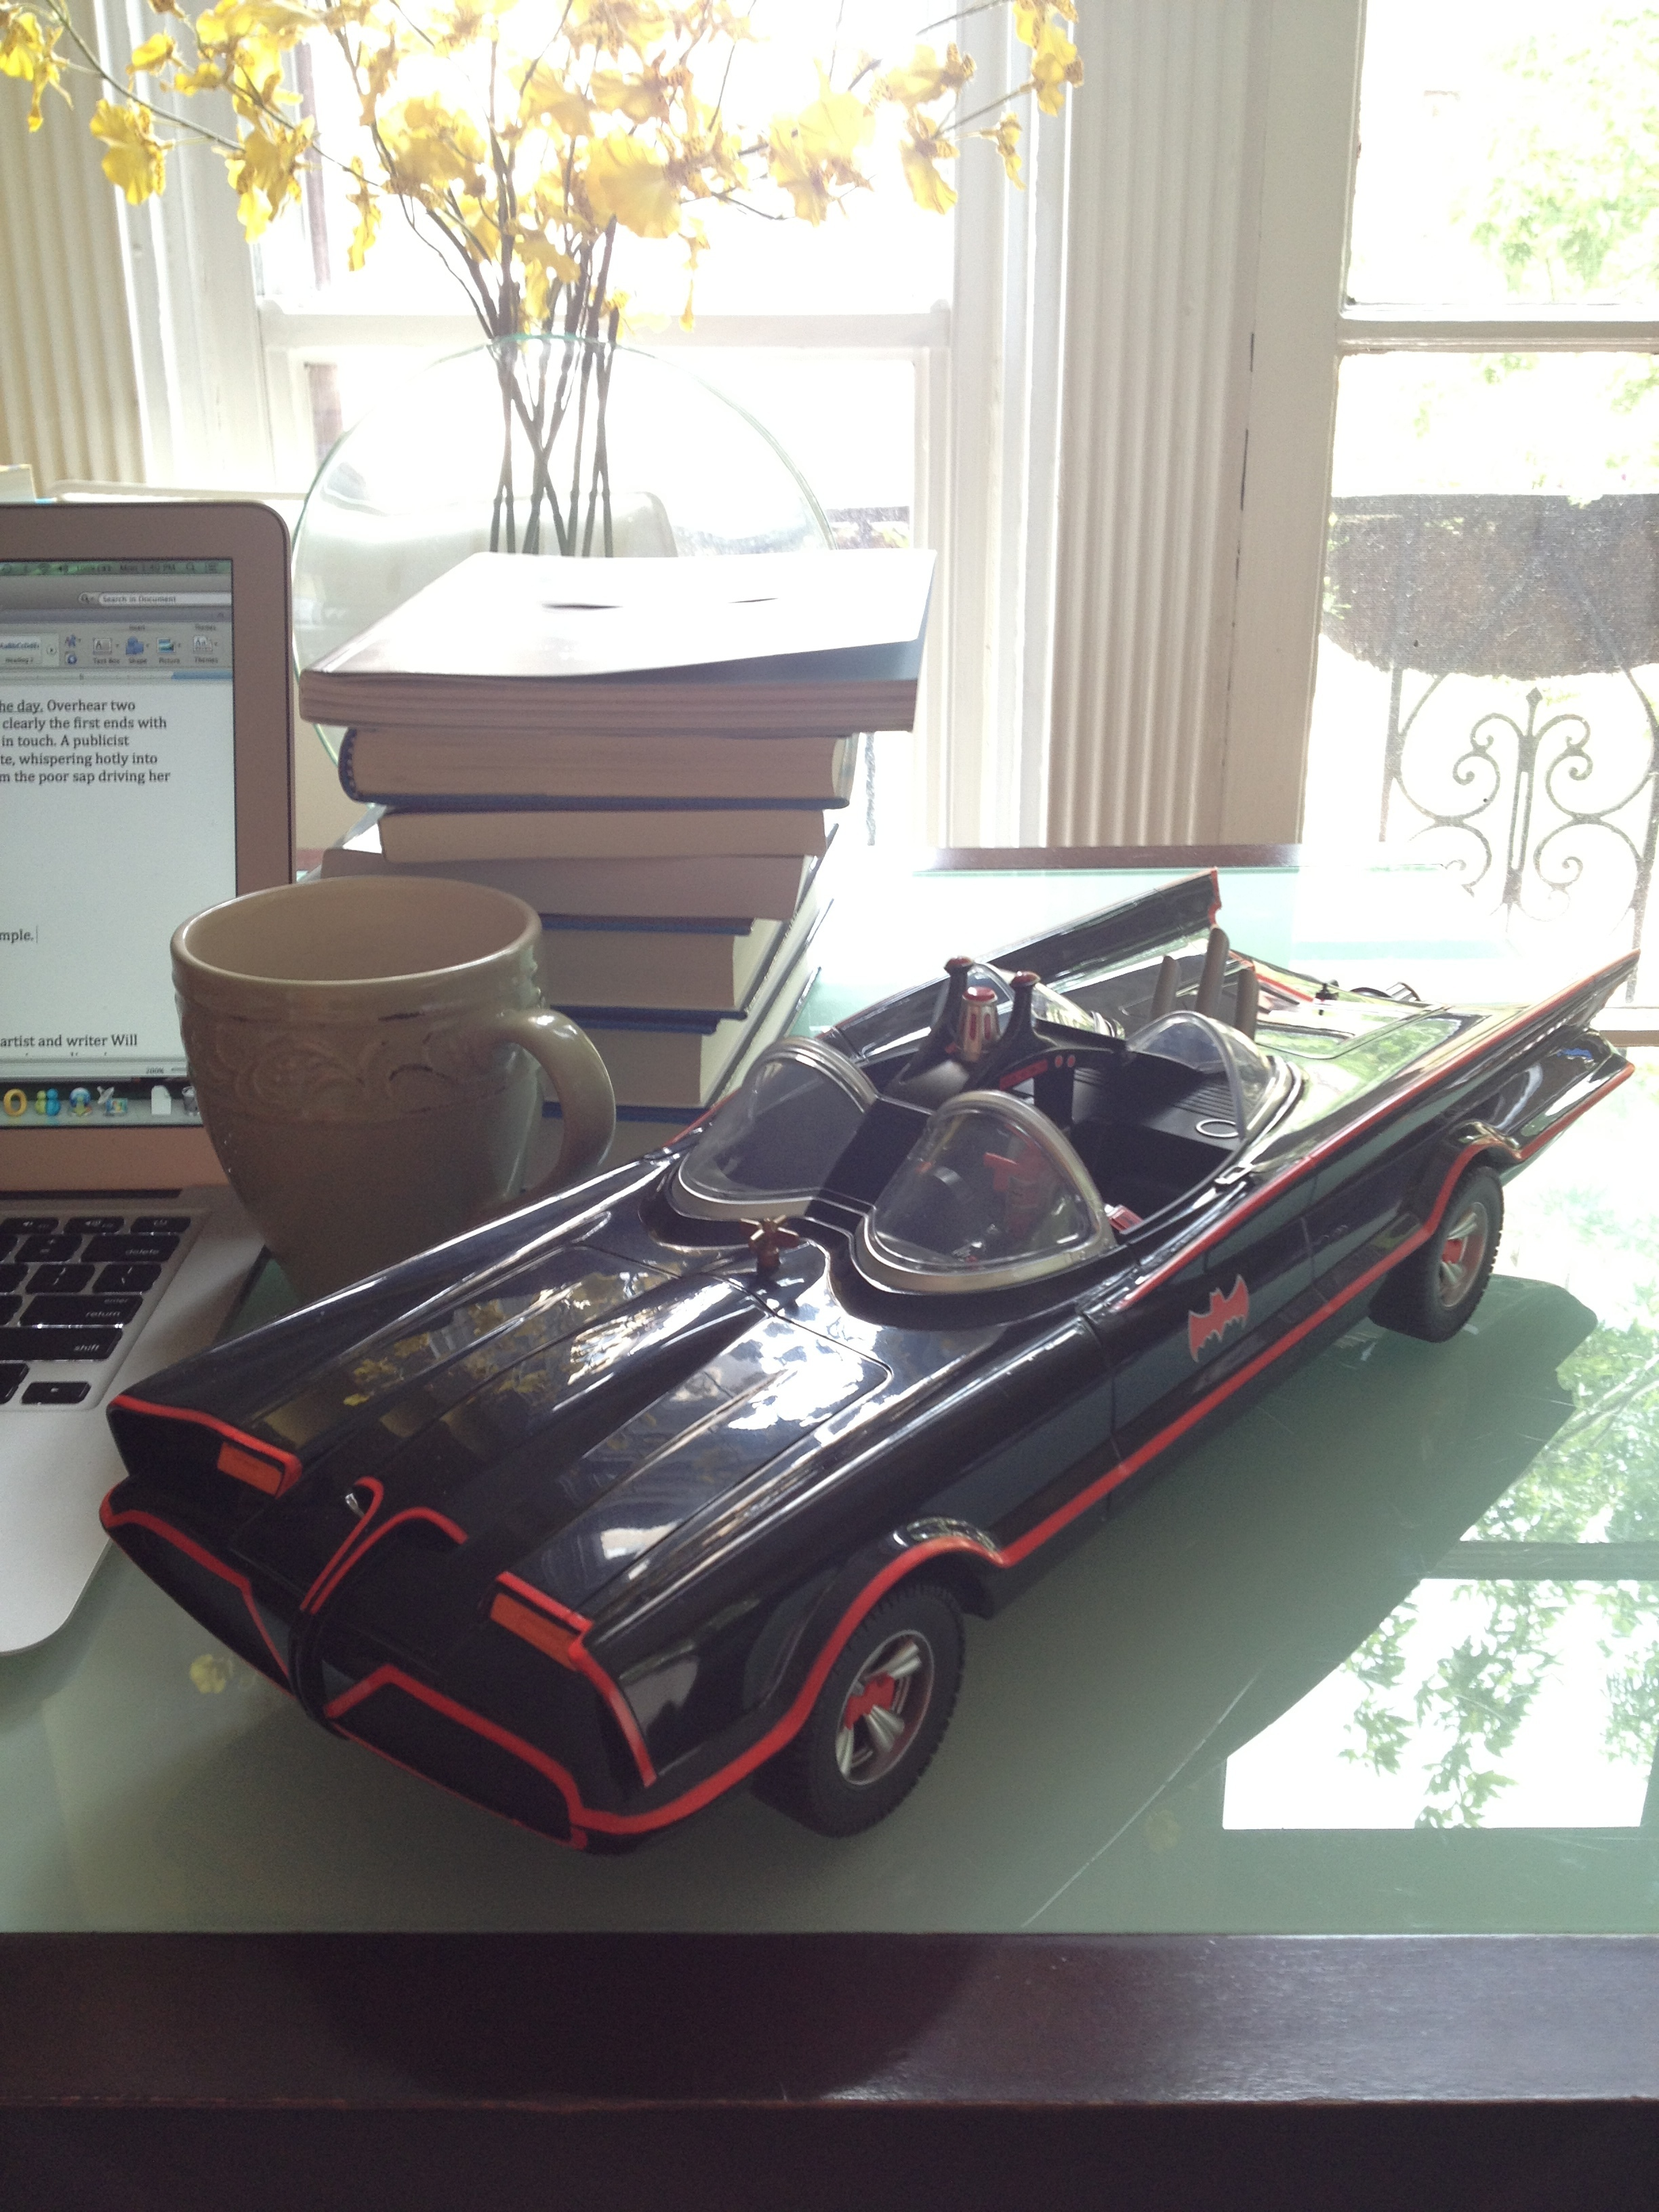 A model of the Batmobile from the 1960s live action Batman television show, starring Adam West and Burt Ward.